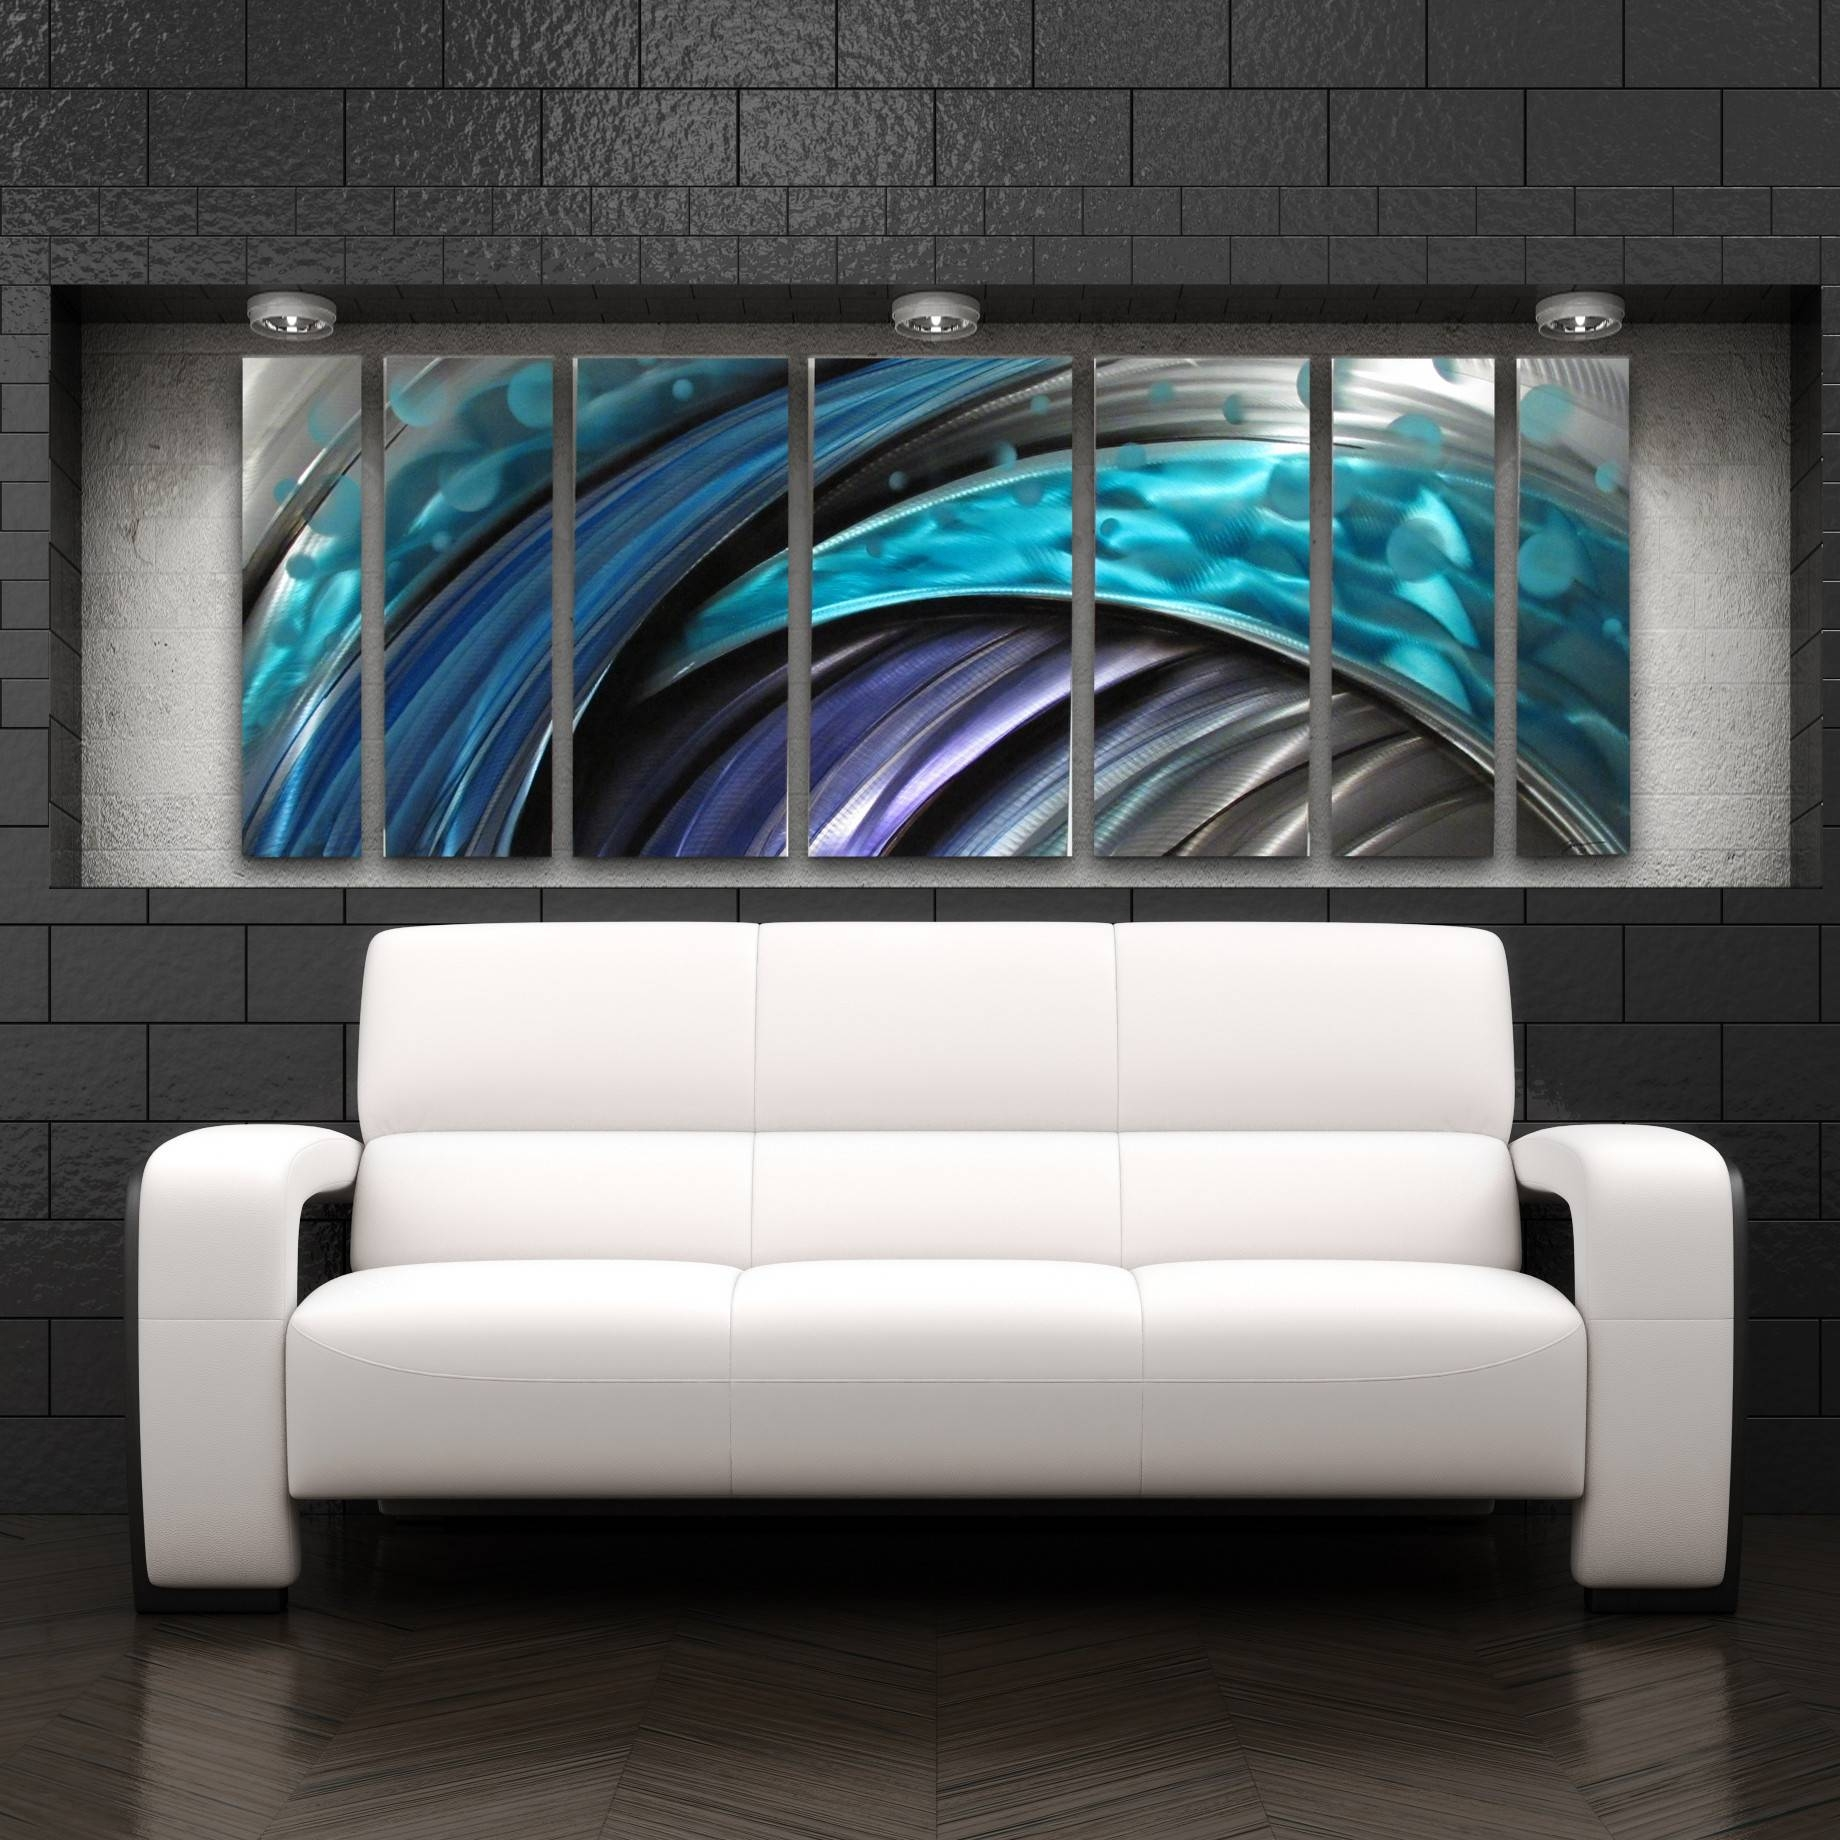 Facts That Nobody Told You About Contemporary Metal Wall Art With Current Contemporary Metal Wall Art Decor (View 9 of 20)